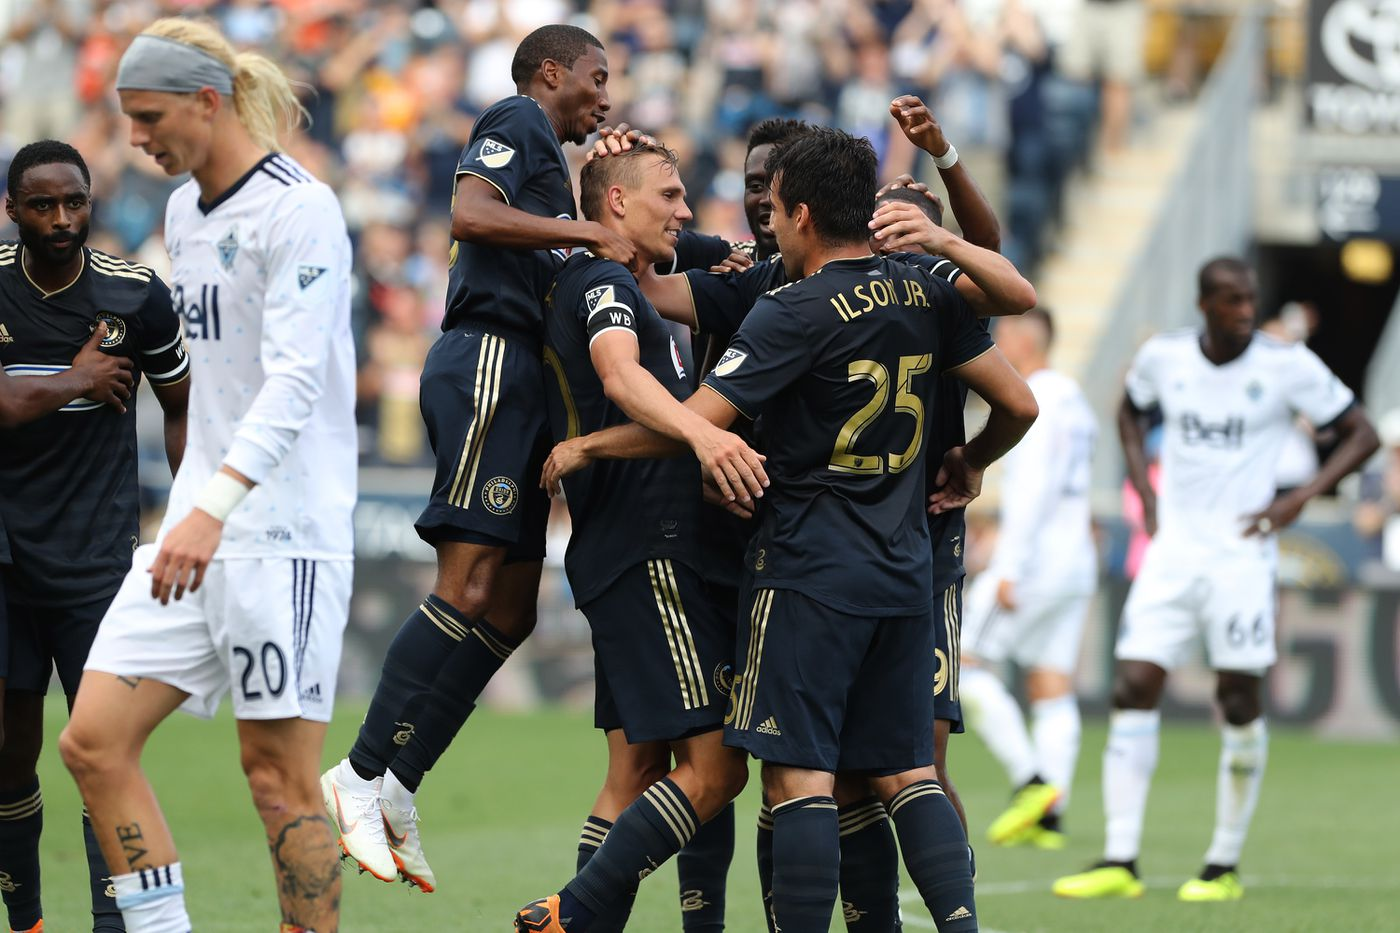 Borek Dockal, Ilsinho star in Union's 4-0 win over Vancouver Whitecaps